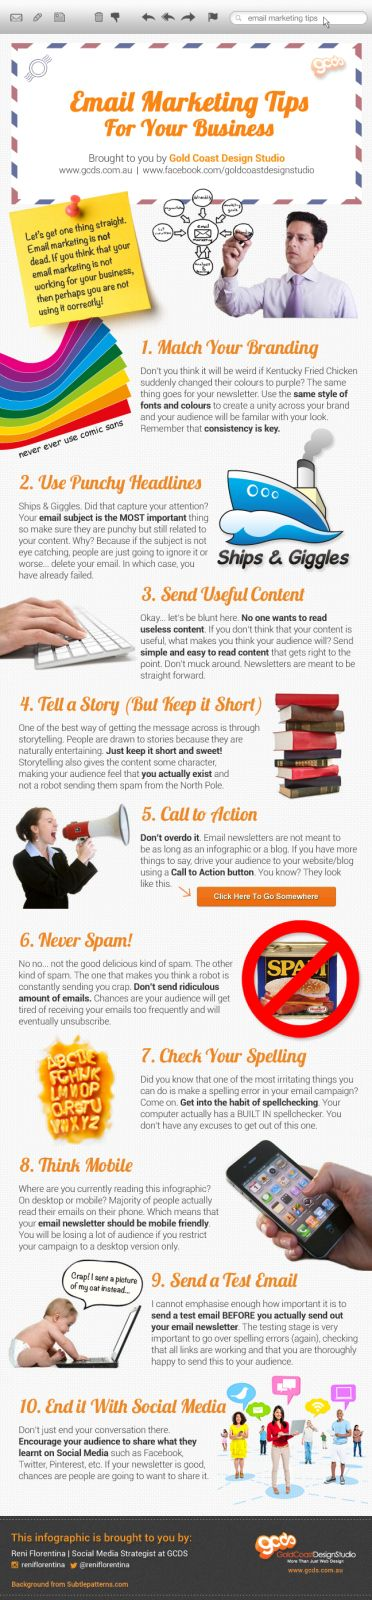 Email Marketing: Tips To Do Better - Infographic